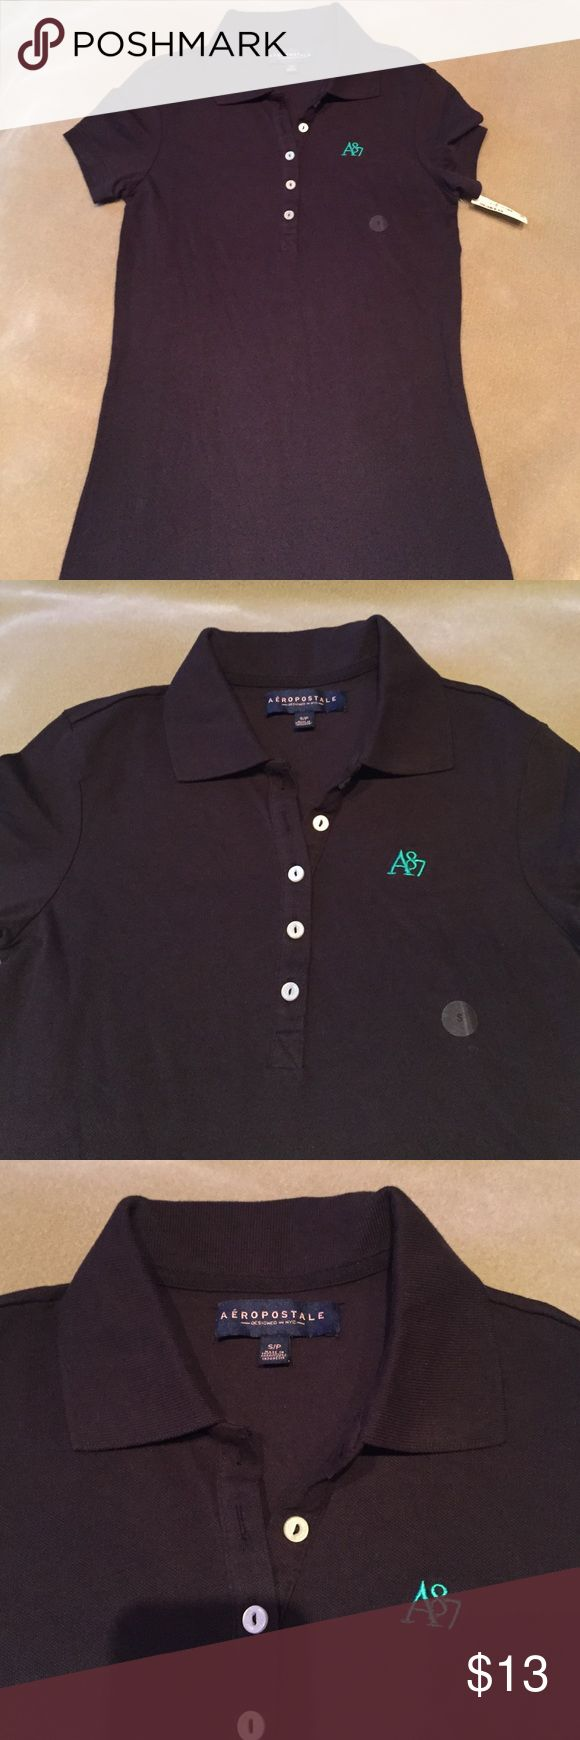 Aeropostale Black Polo Shirt NEW Aeropostale NEW black Polo Shirt with Teal Green logo on front.. buttons on front too. Aeropostale Tops Blouses